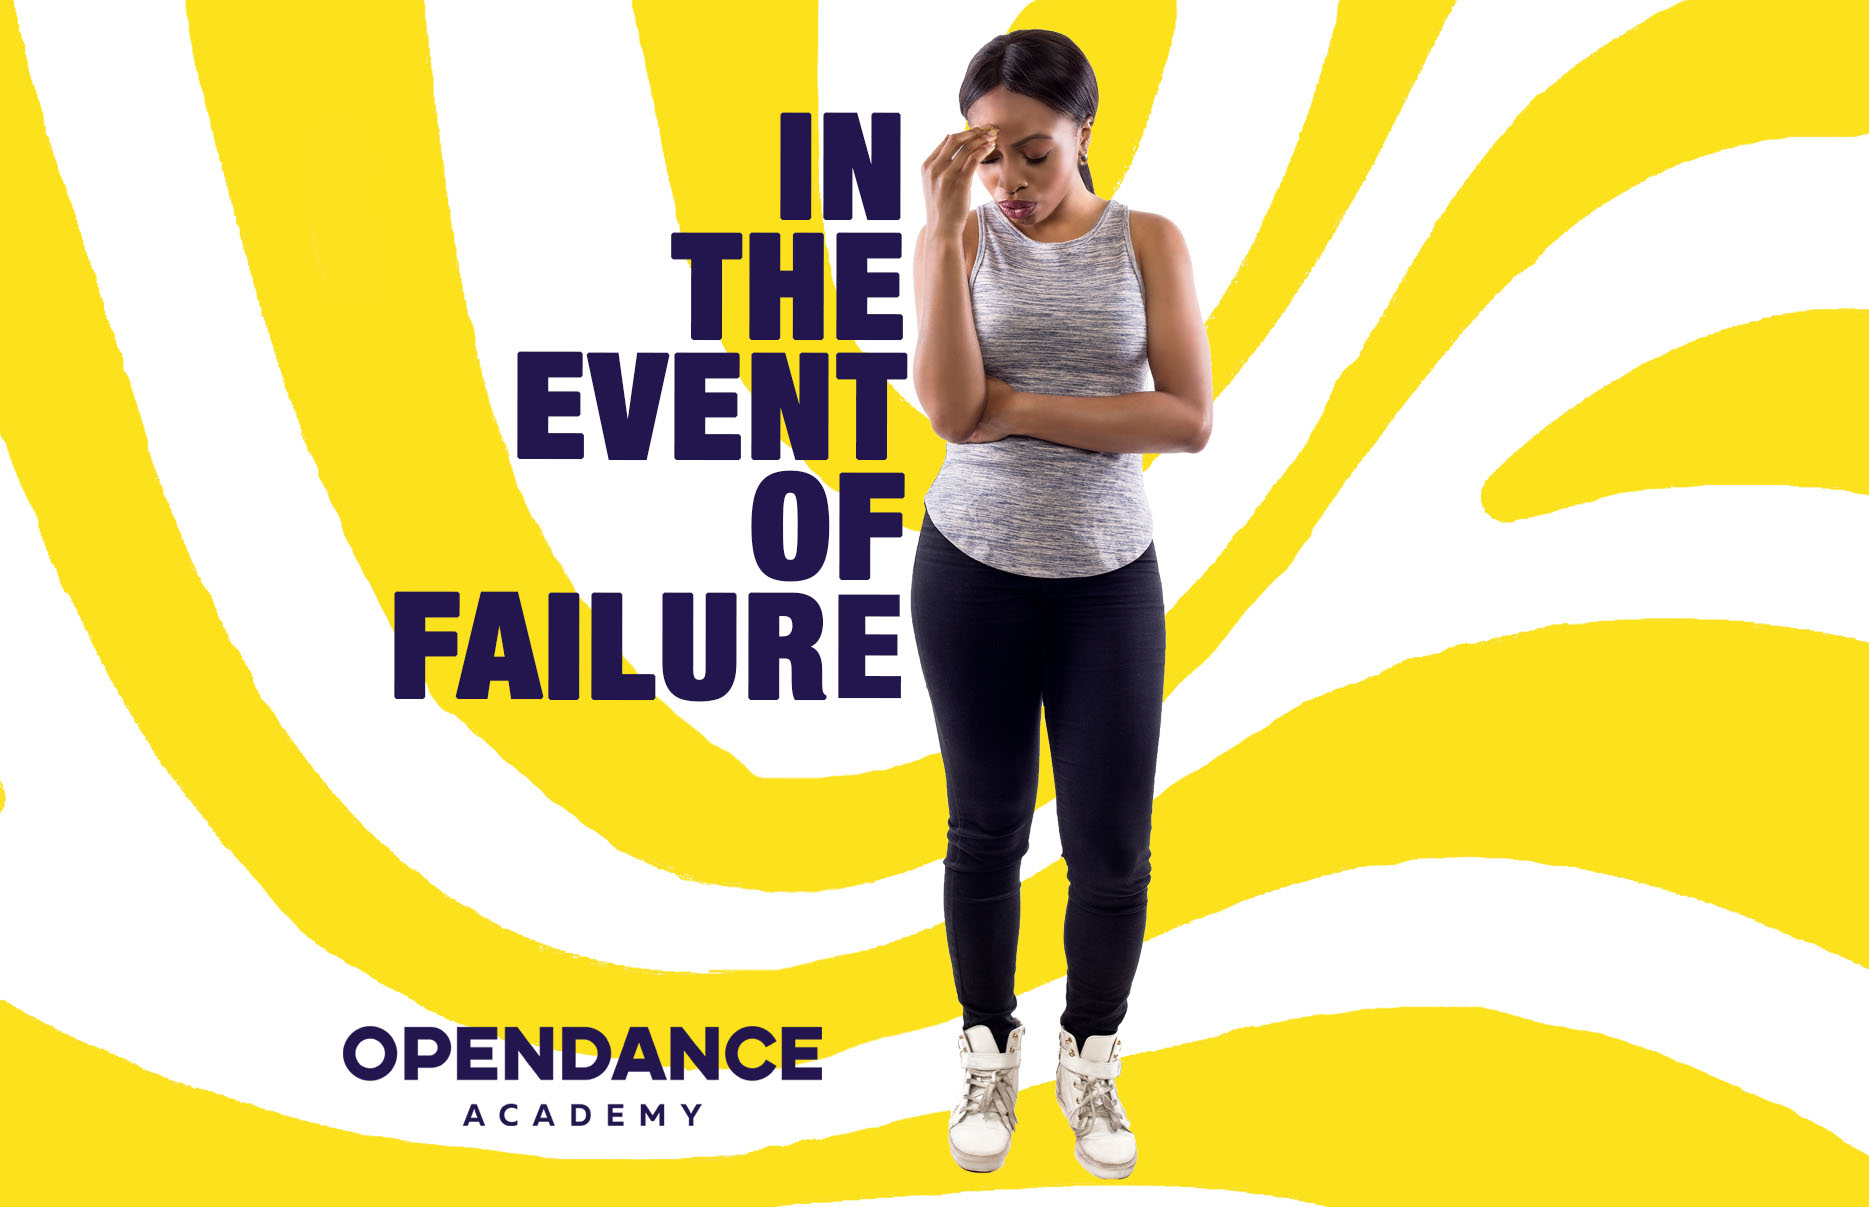 In The Event Of Failure